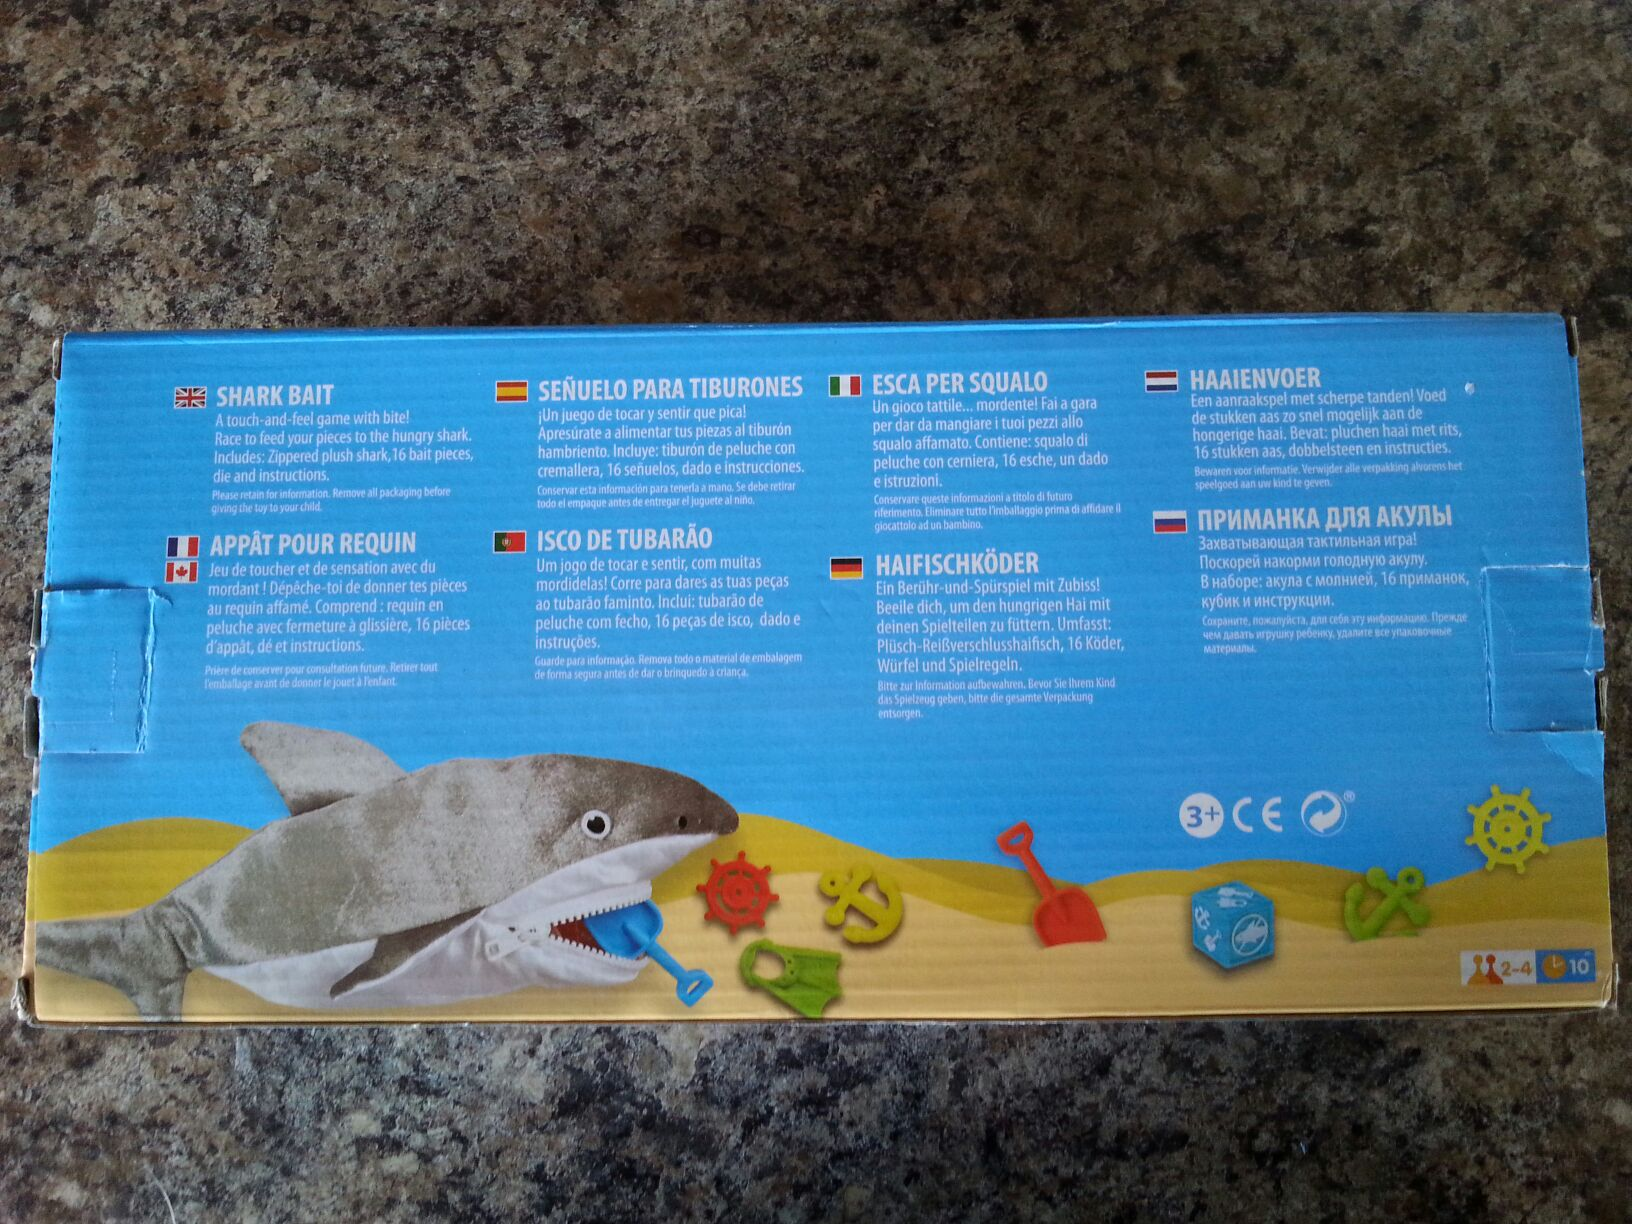 Shark Bait Board Game - melissa and doug (Children's Game) back image (back cover, second image)